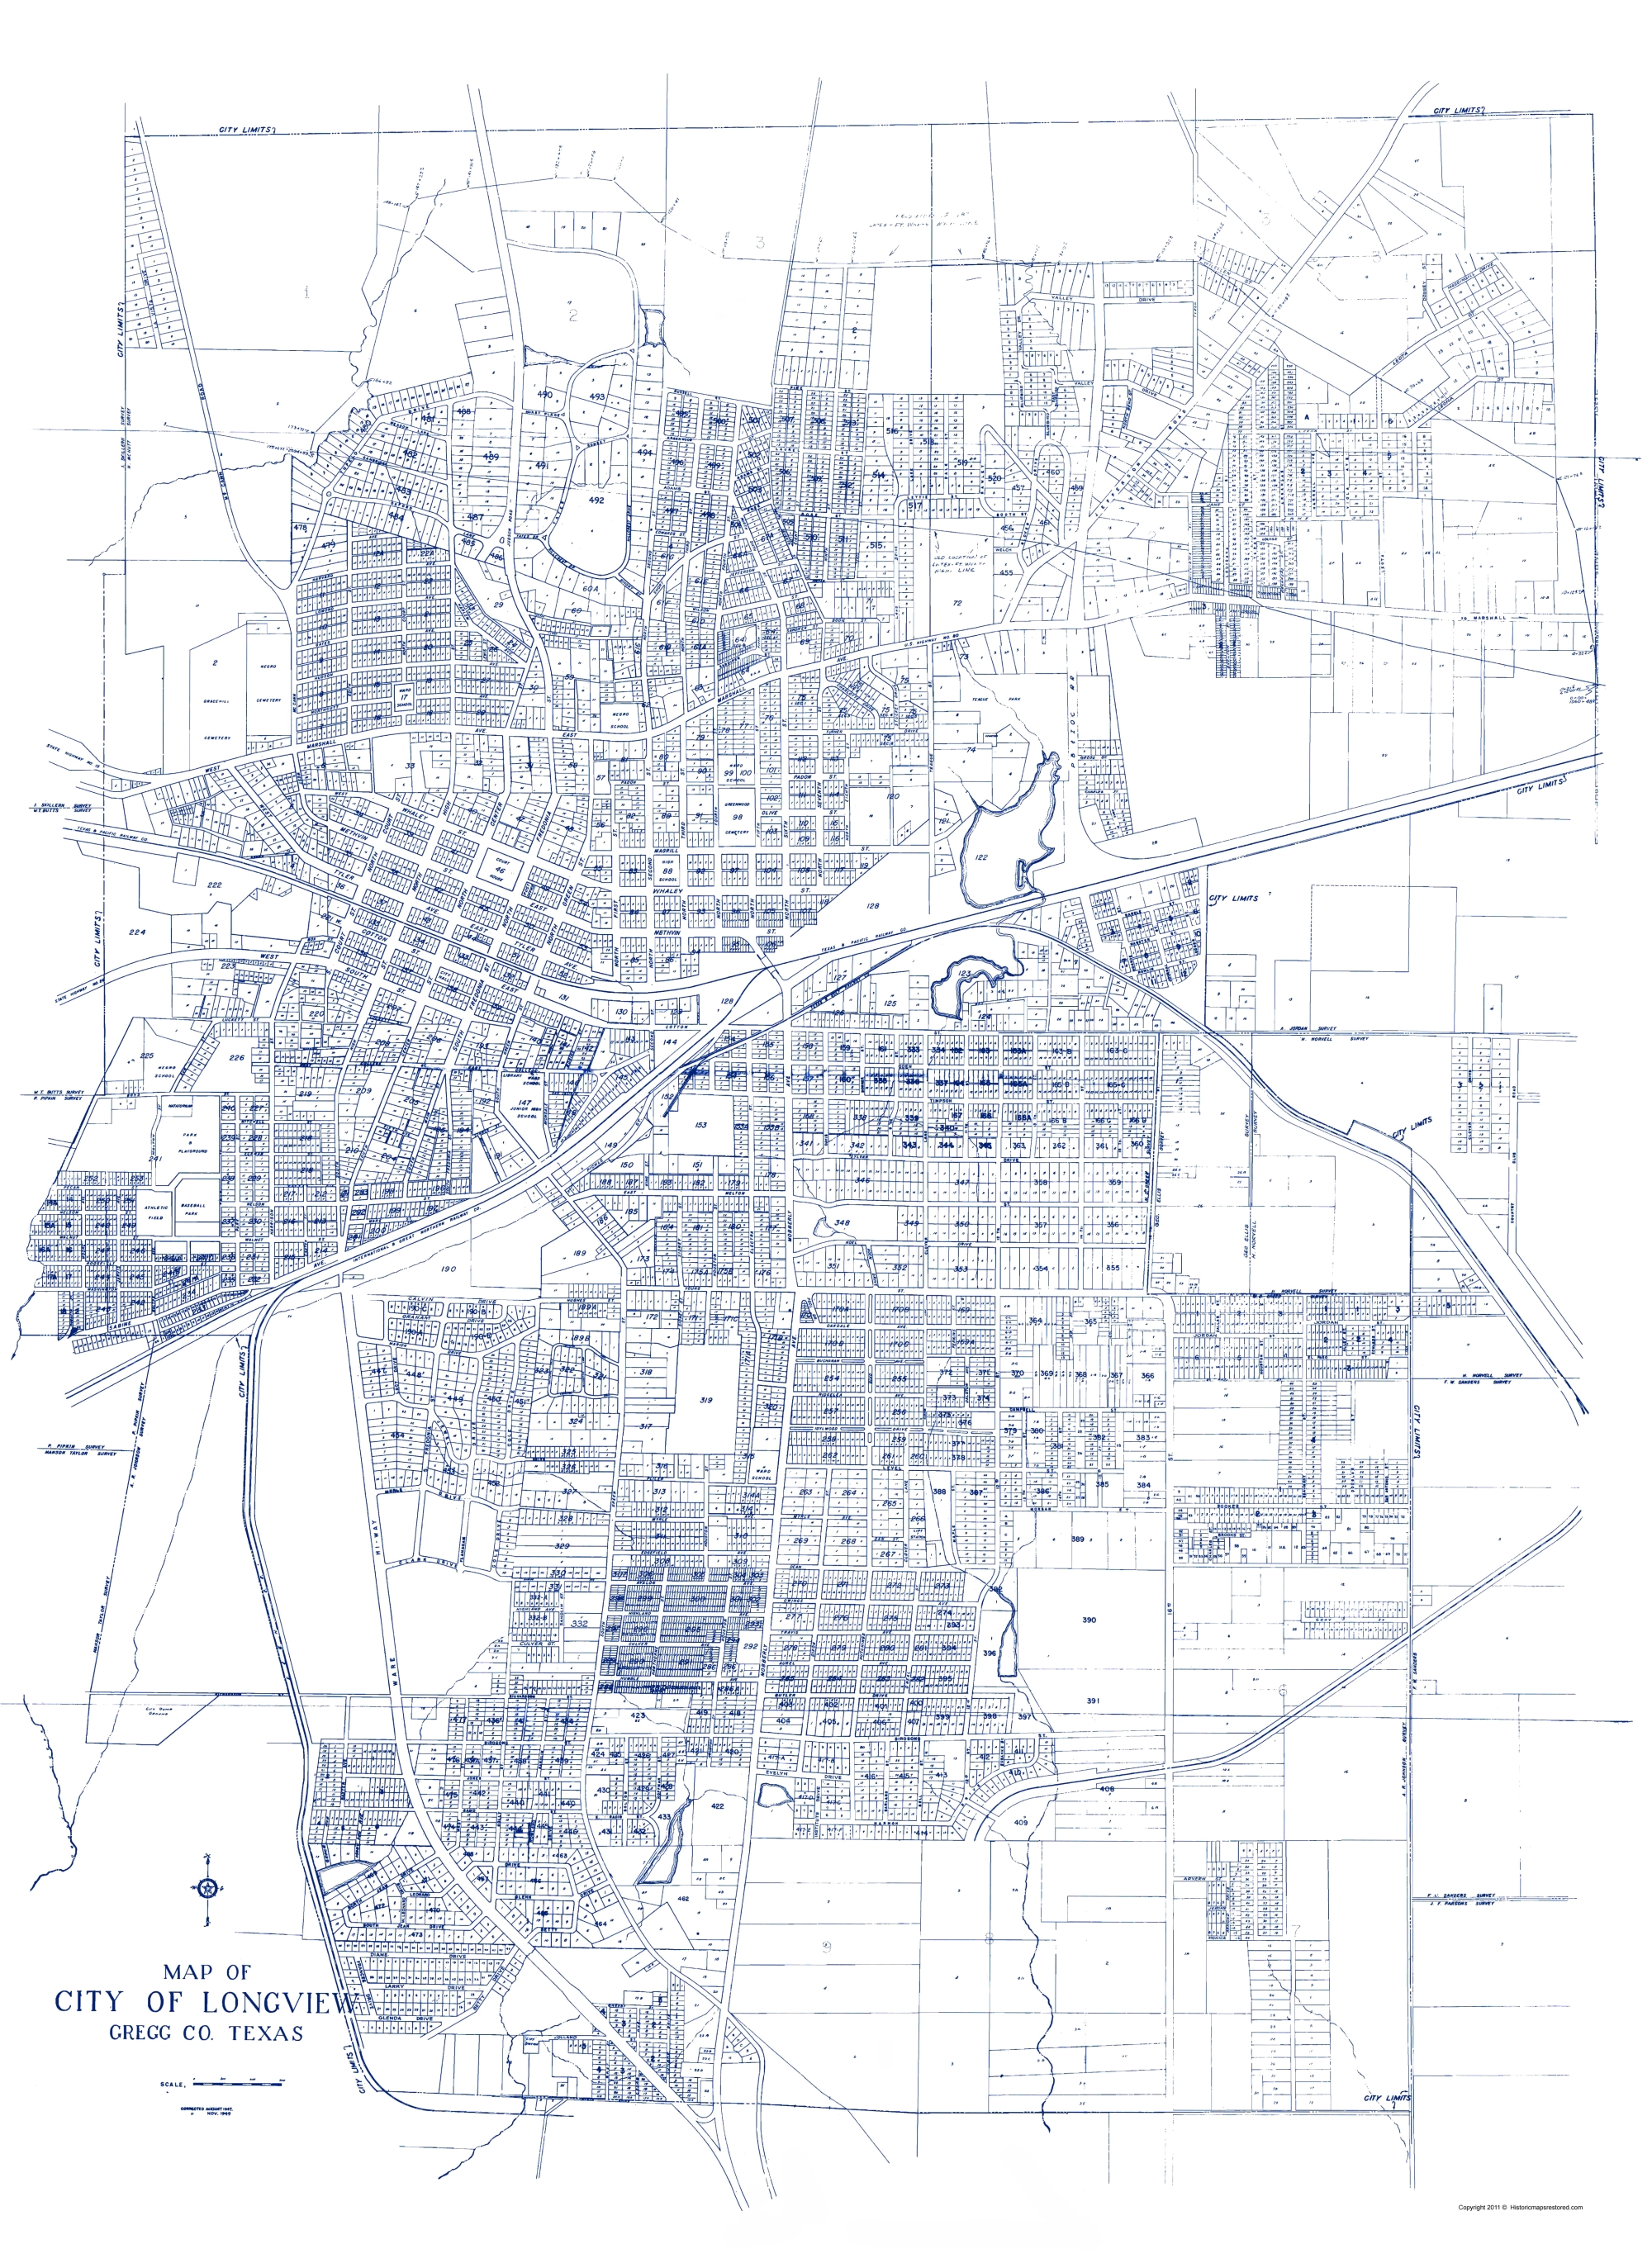 Old City Map Longview Texas 1949